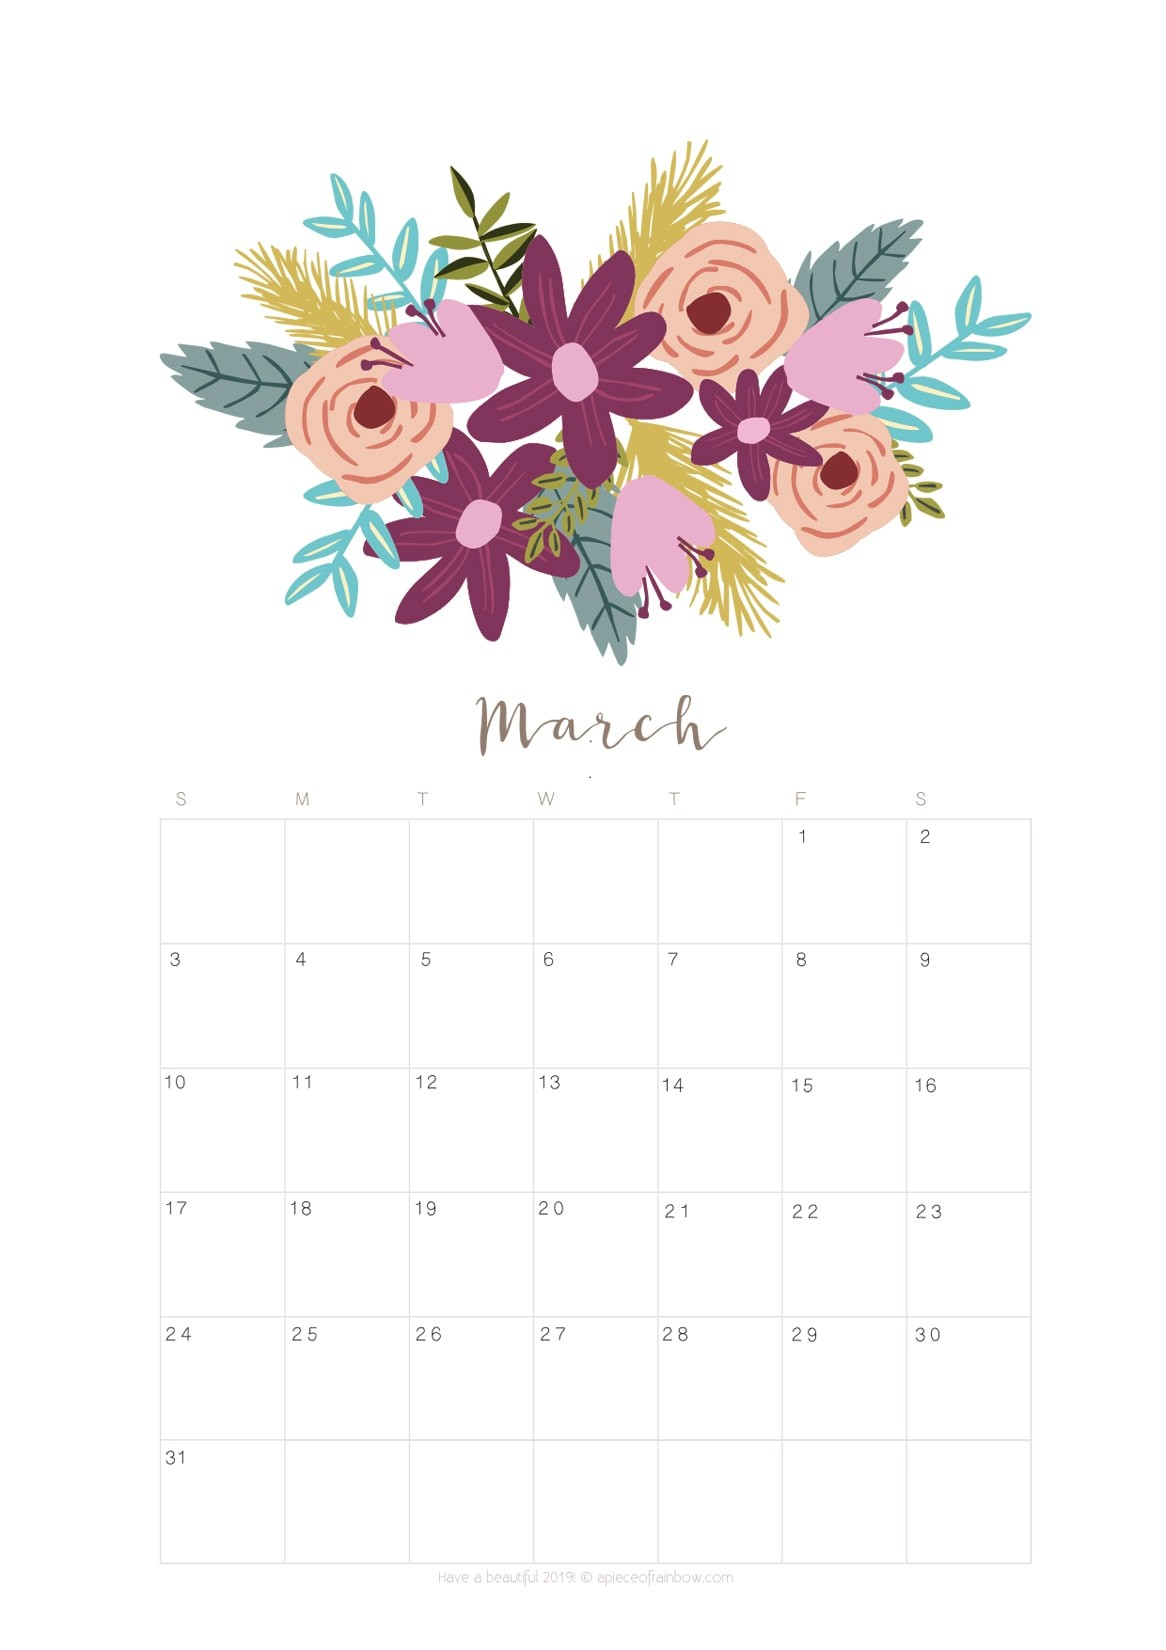 March Calendar 2019 Más Actual Printable March 2019 Calendar Monthly Planner 2 Designs Flowers Of March Calendar 2019 Más Actual Odia Calendar 2019 with March Odishain